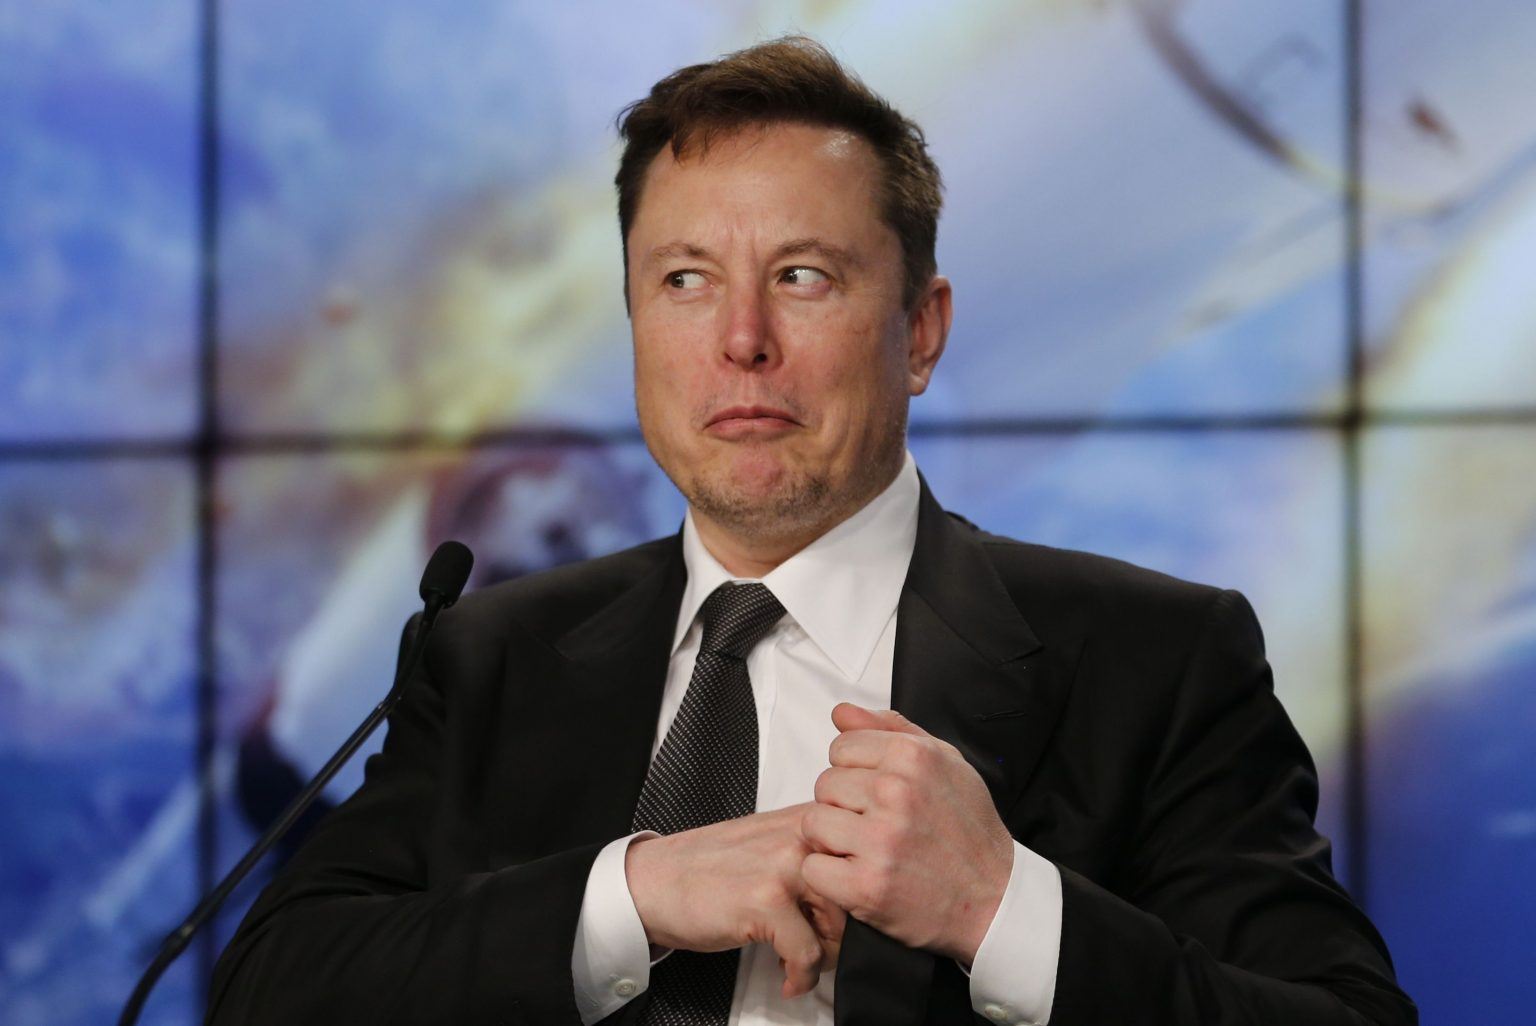 Youngest HODLer ever? Elon Musk buys DOGE for his 9-month-old son